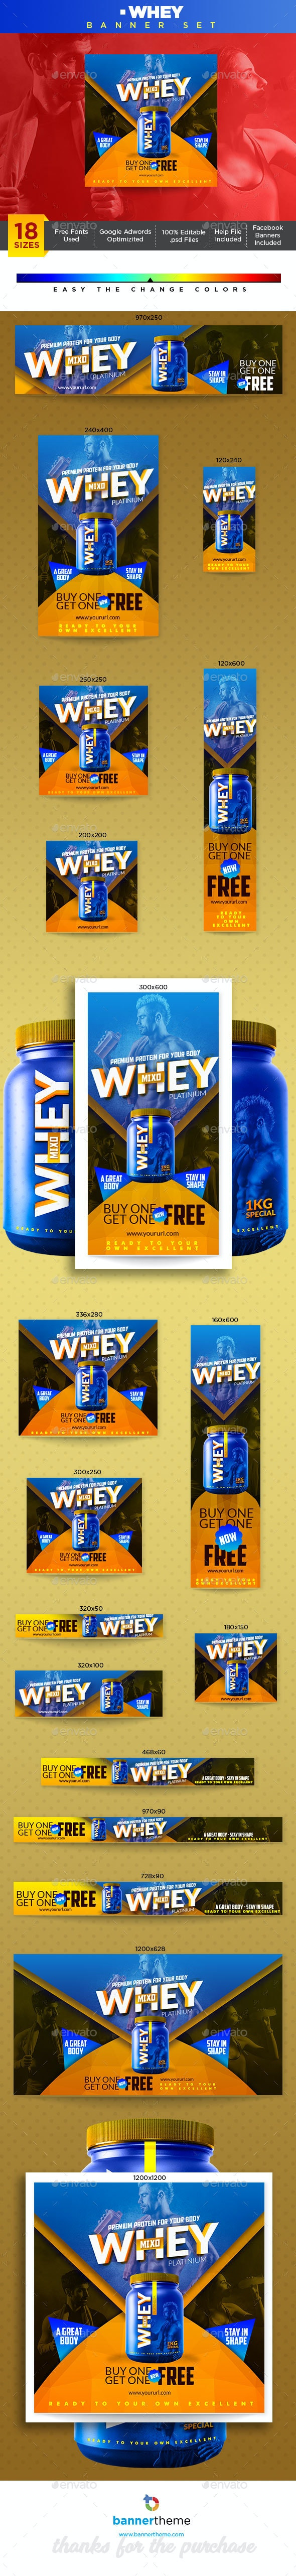 Whey Banner - Banners & Ads Web Elements